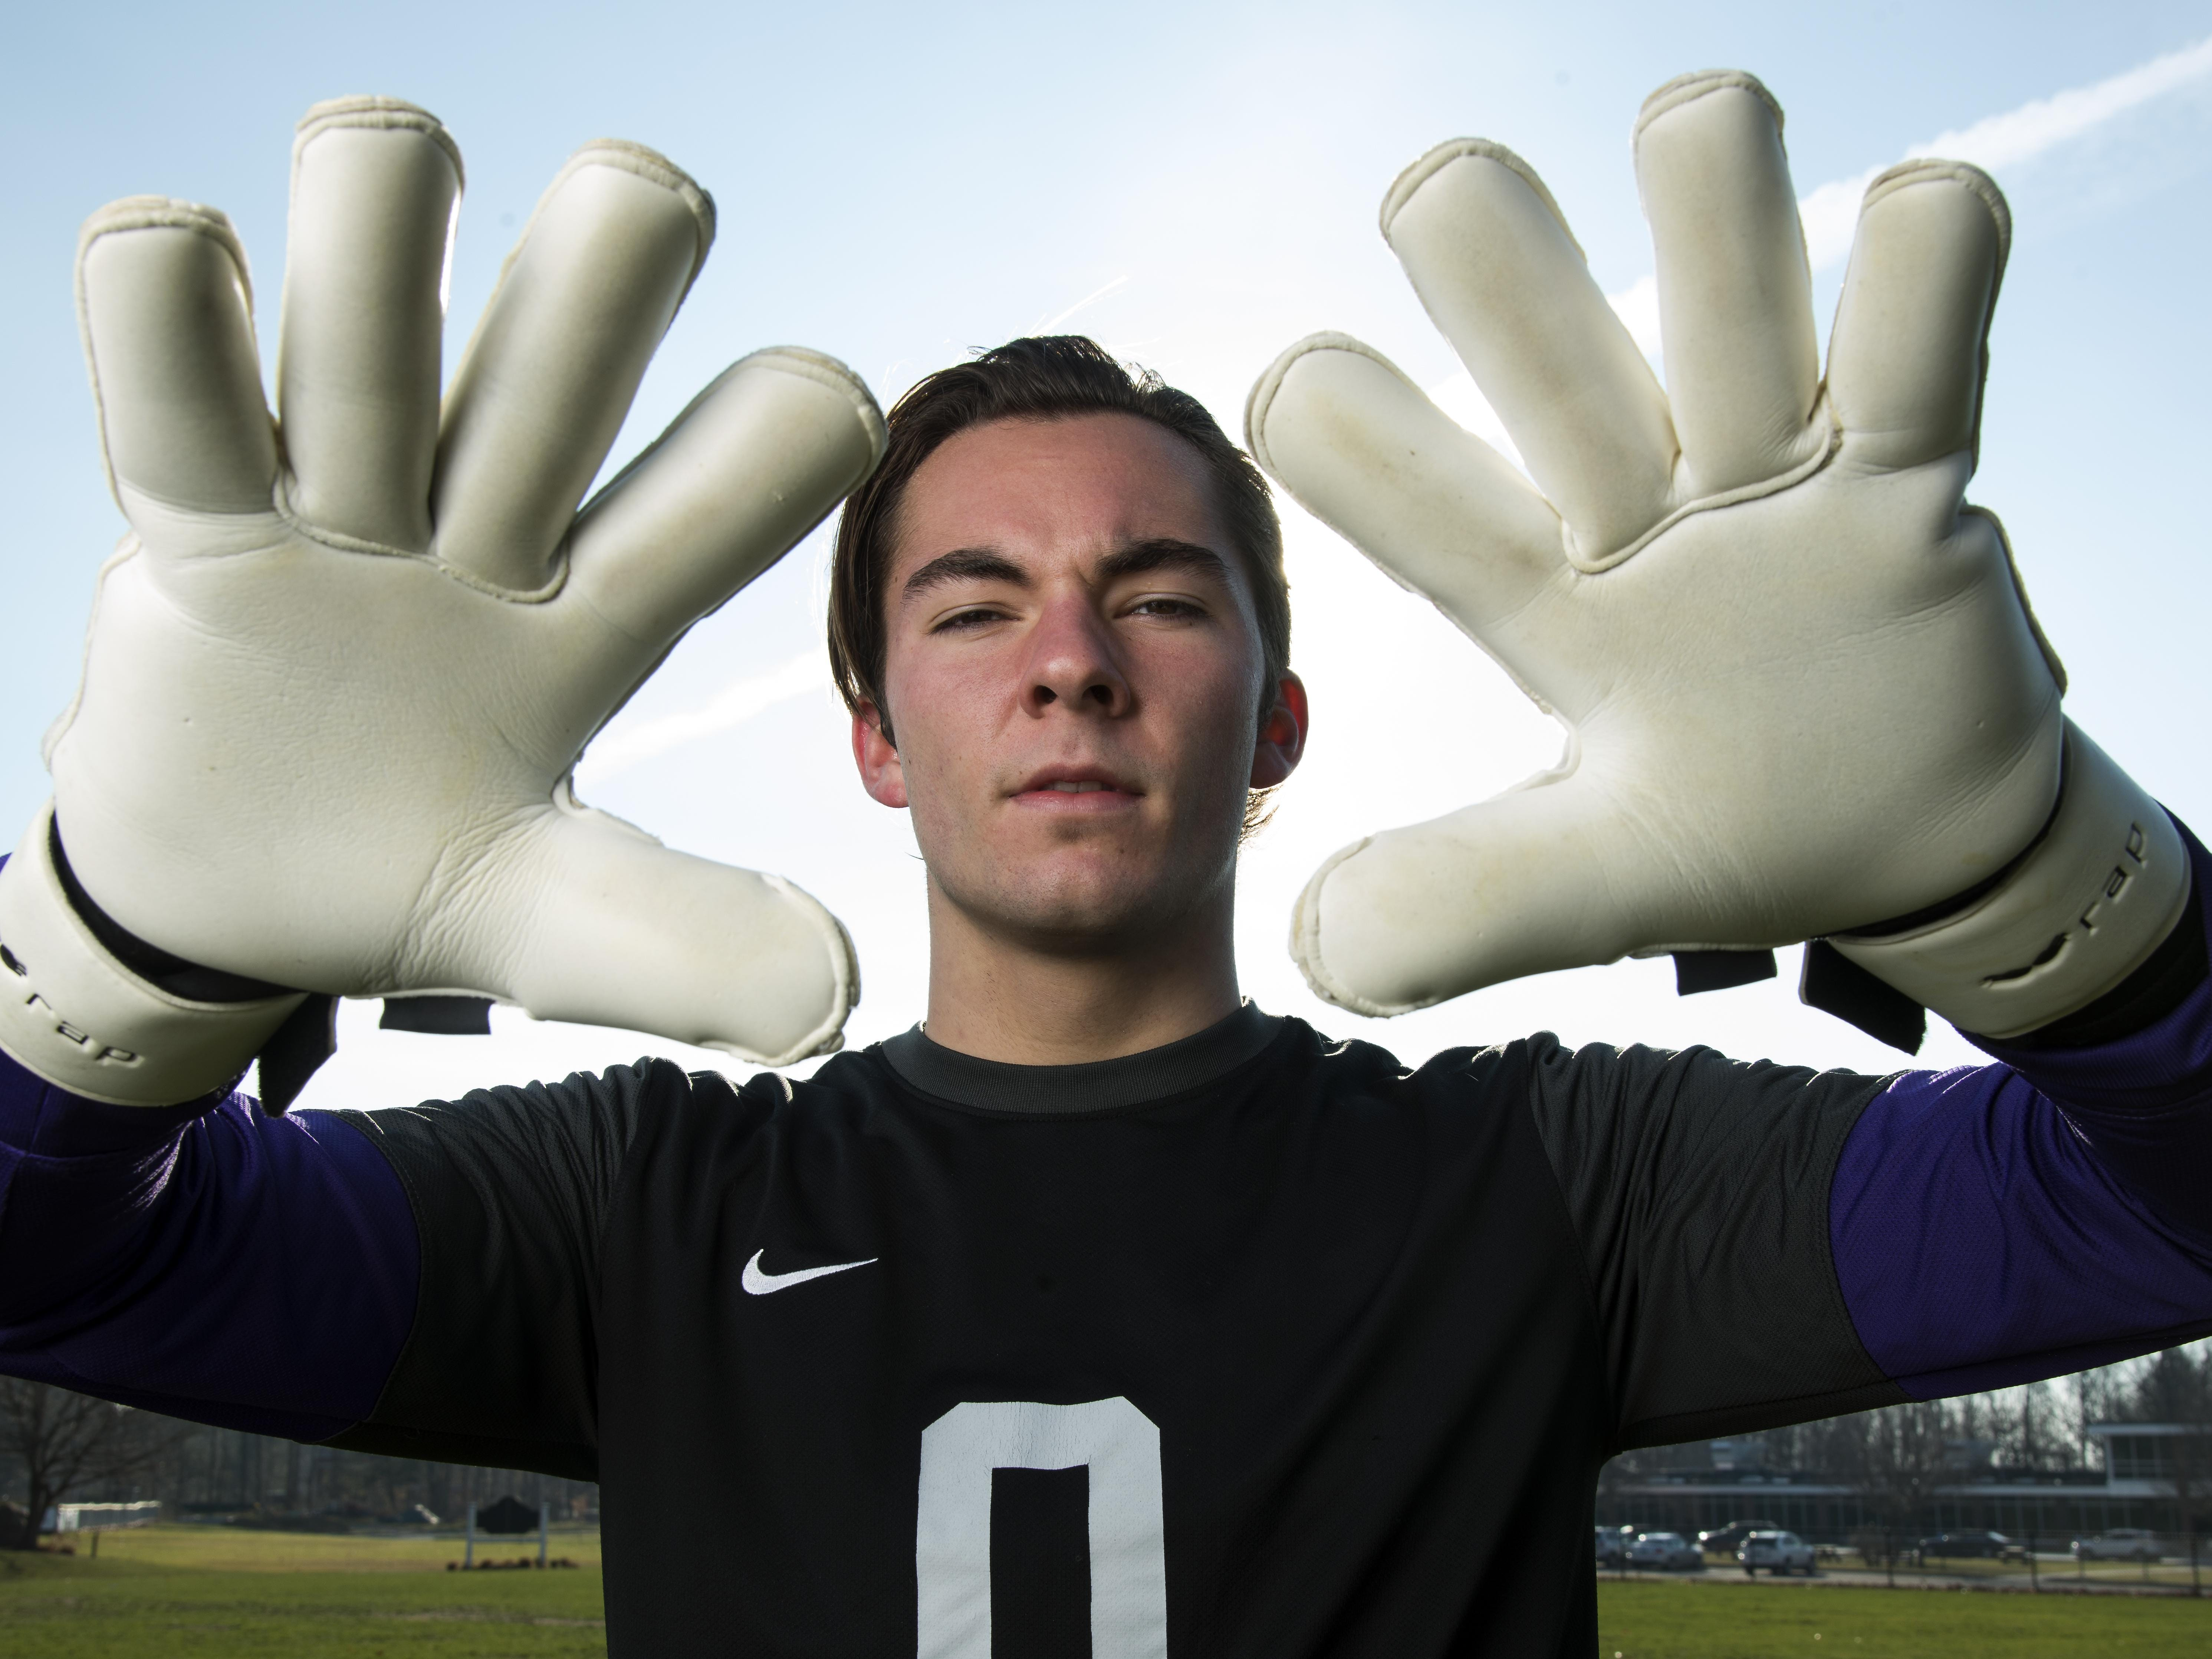 Rice goalie Leland Gazo poses for a portrait at Rice Memorial High School last week. Gazo was the Free Press boys soccer player of the year.